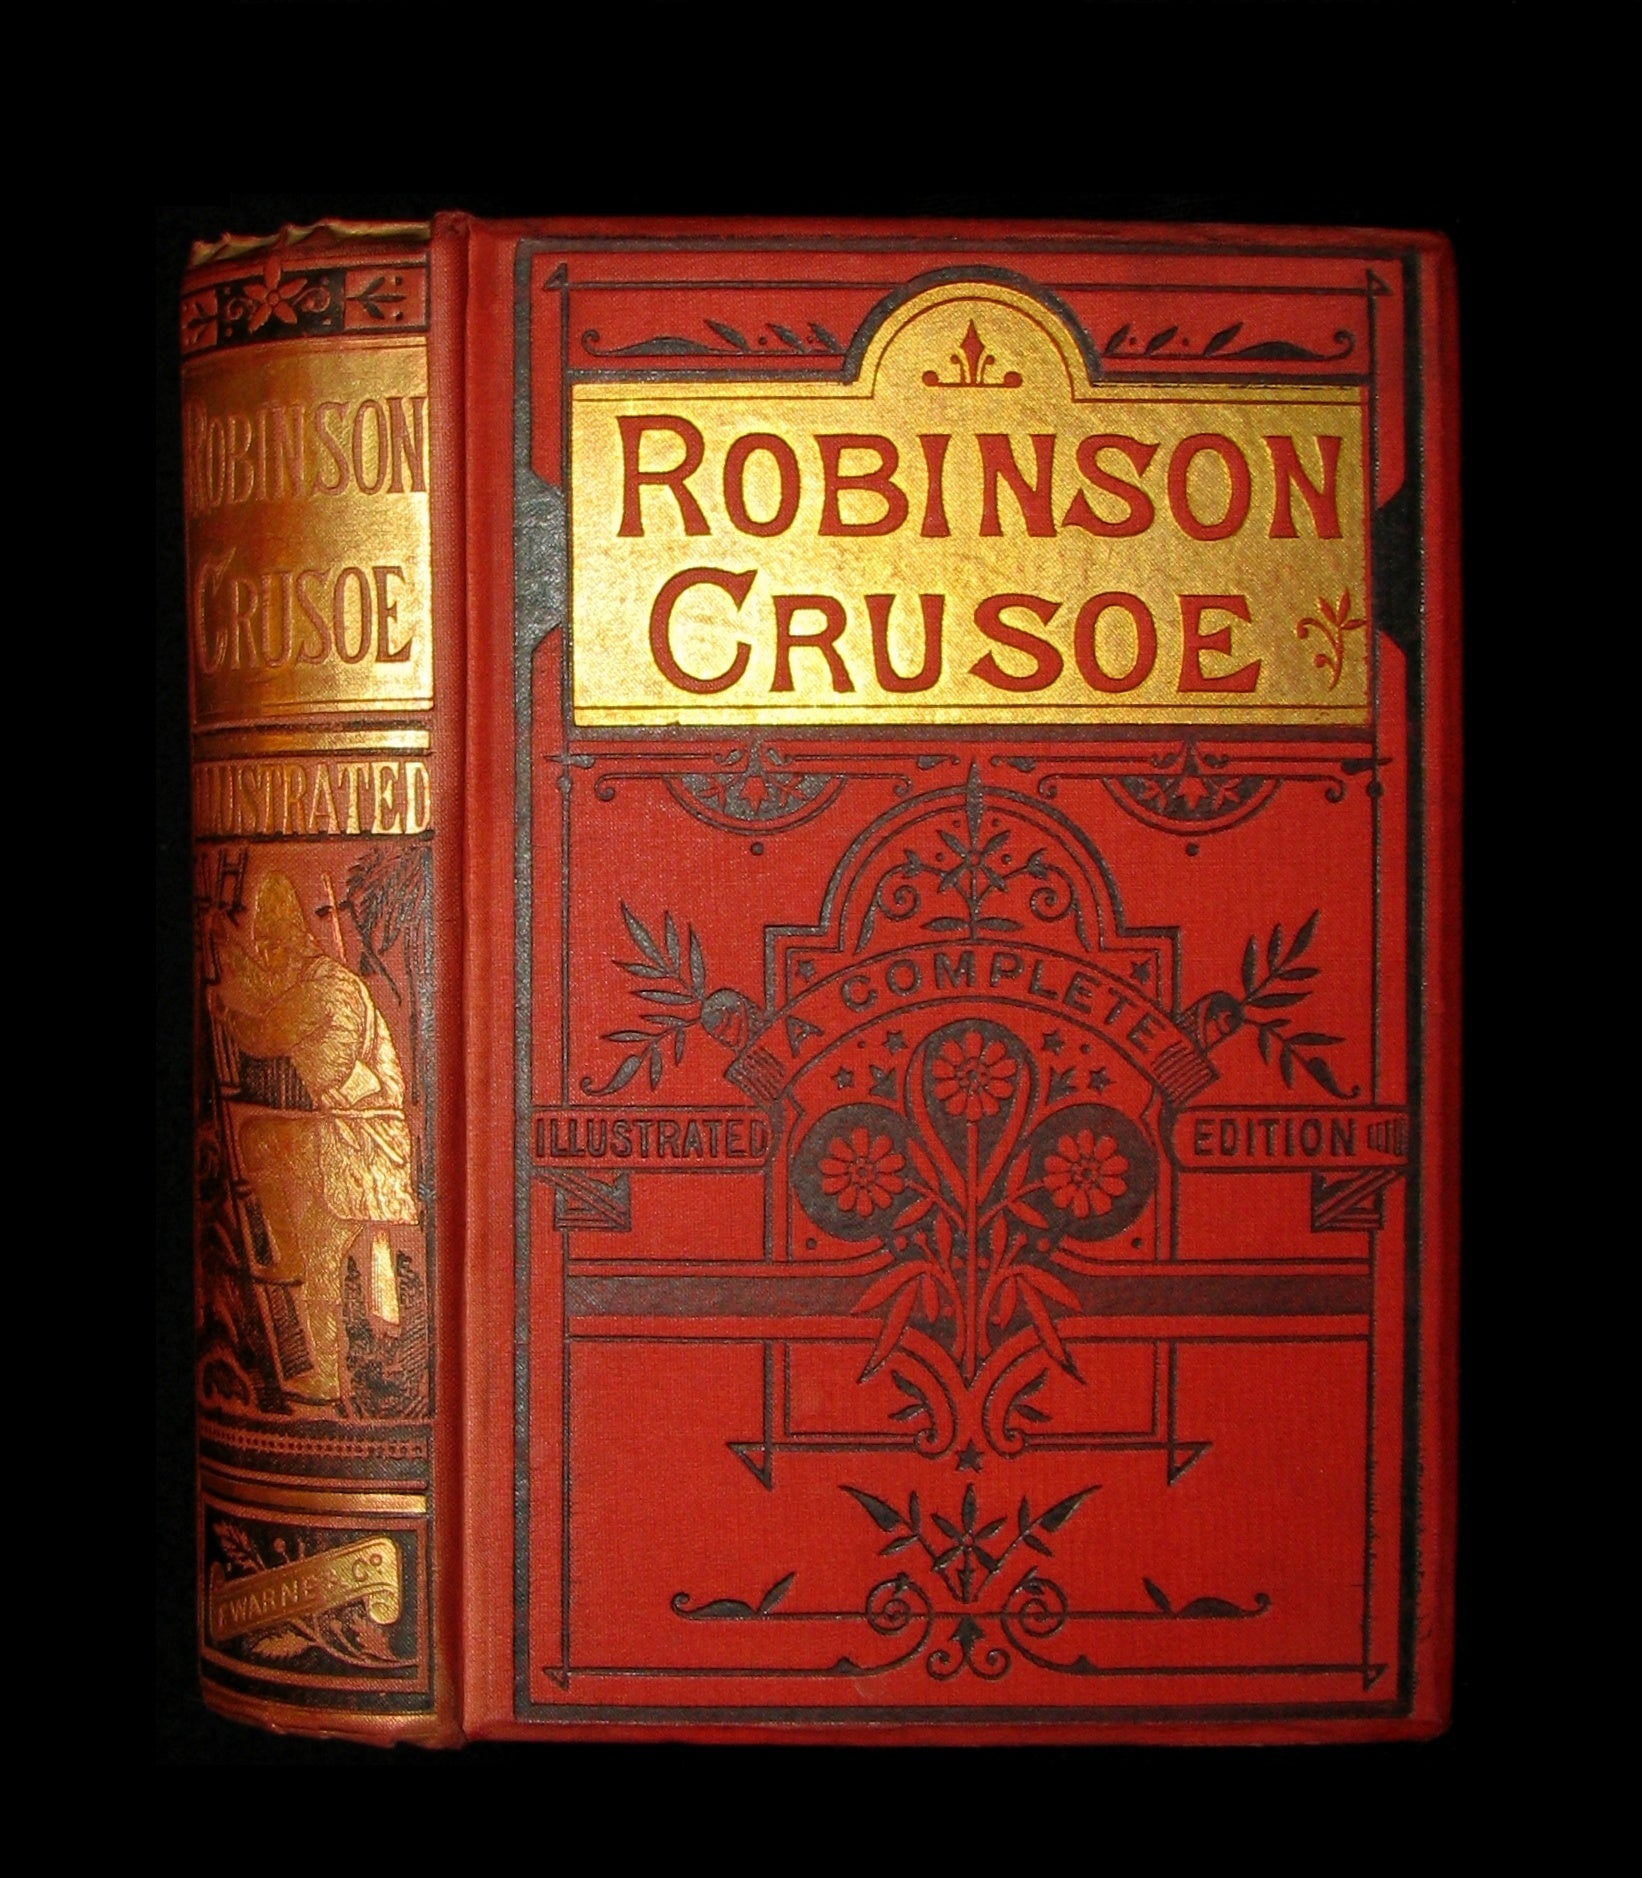 1880 Rare Book - THE LIFE & ADVENTURES OF ROBINSON CRUSOE. Illustrated by Ernest Griset.